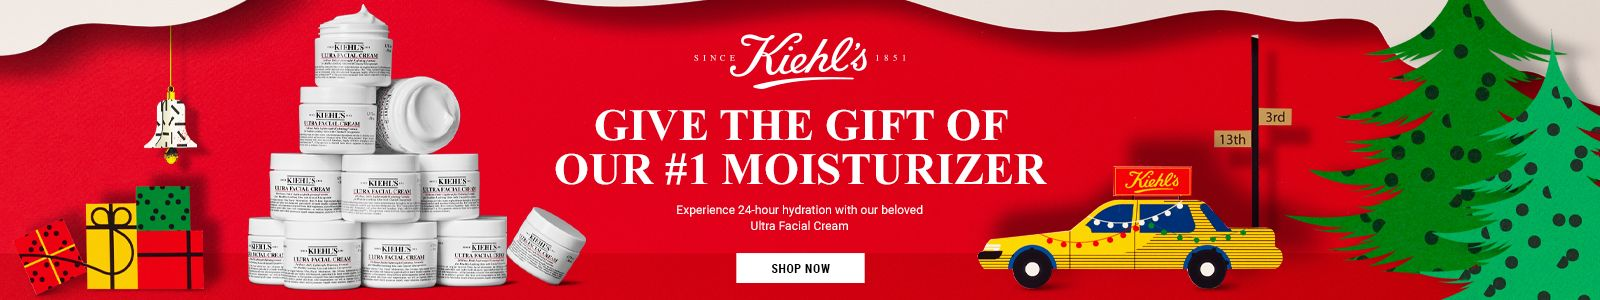 Since Kiehls, Give The Gift of Our 1 Moisturizer, Shop Now